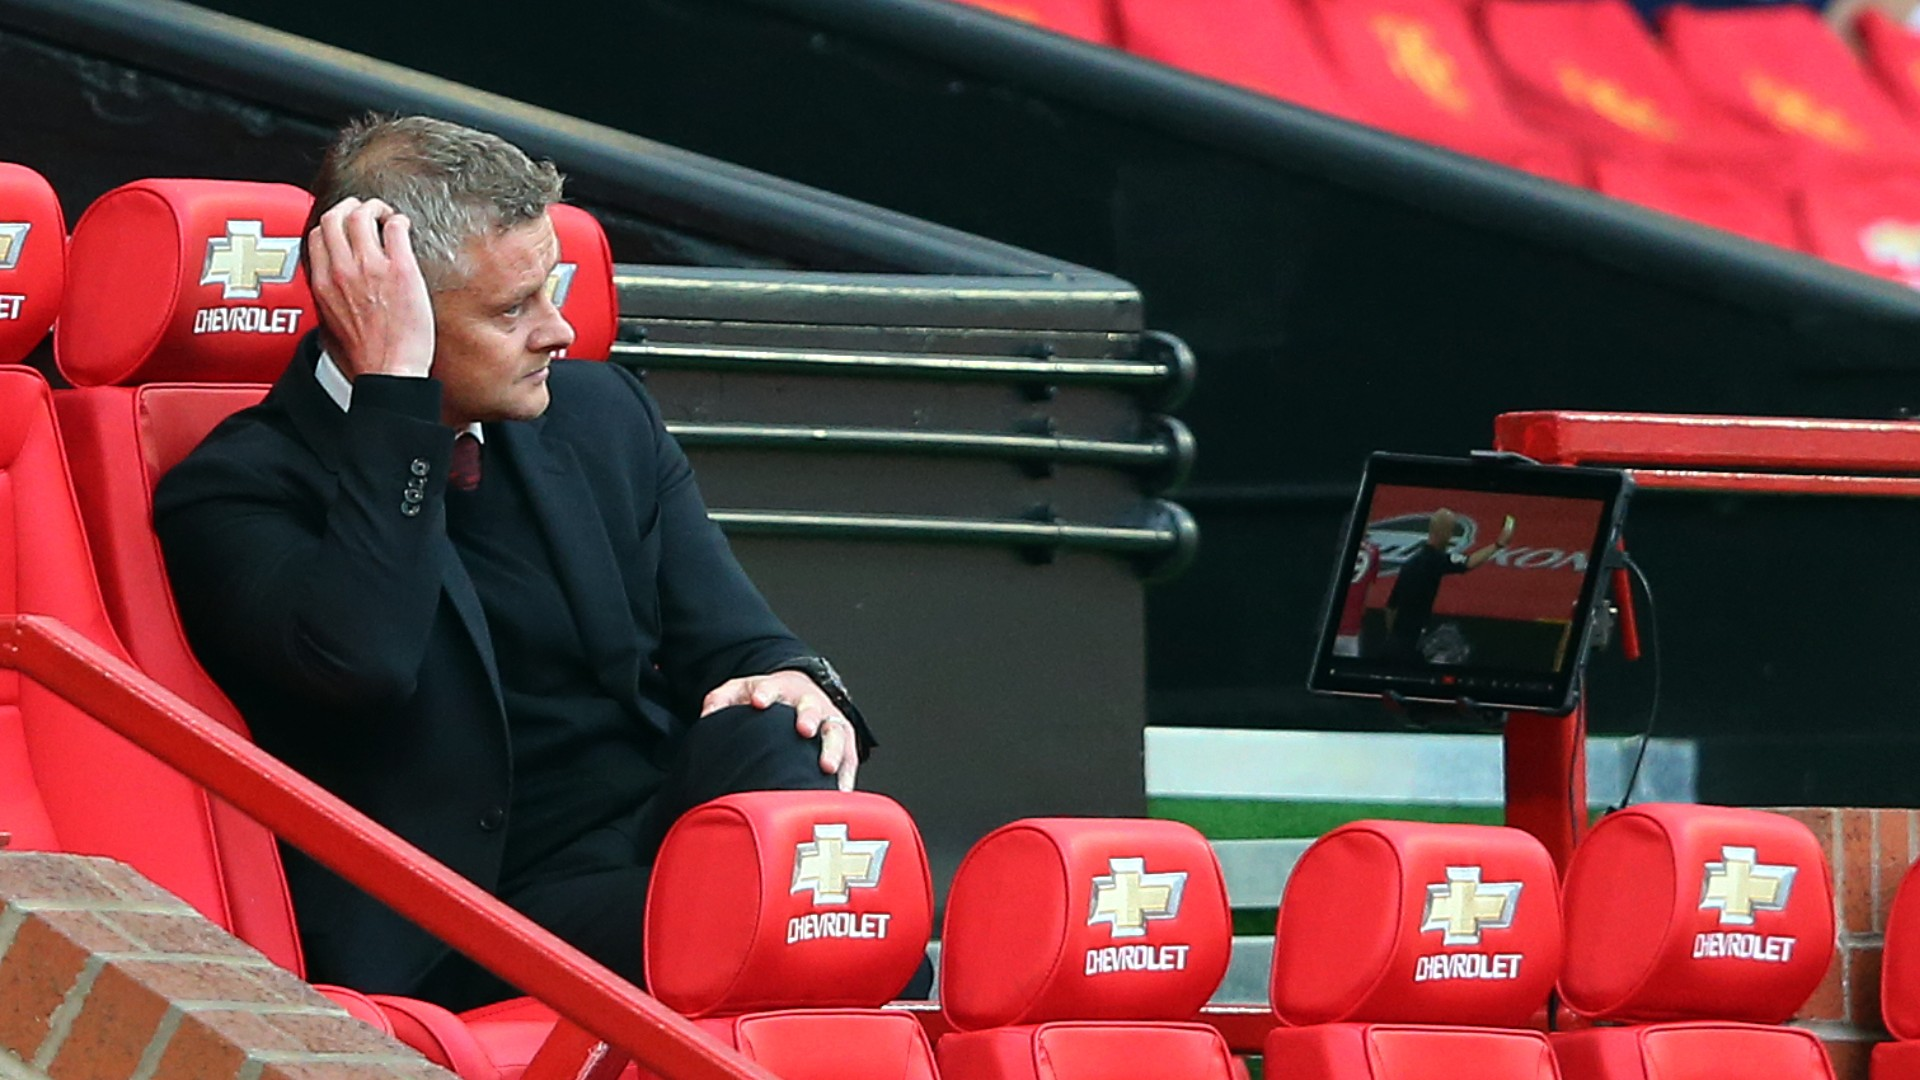 Solskjaer contemplating changes to address 'noticeable' difference in home form